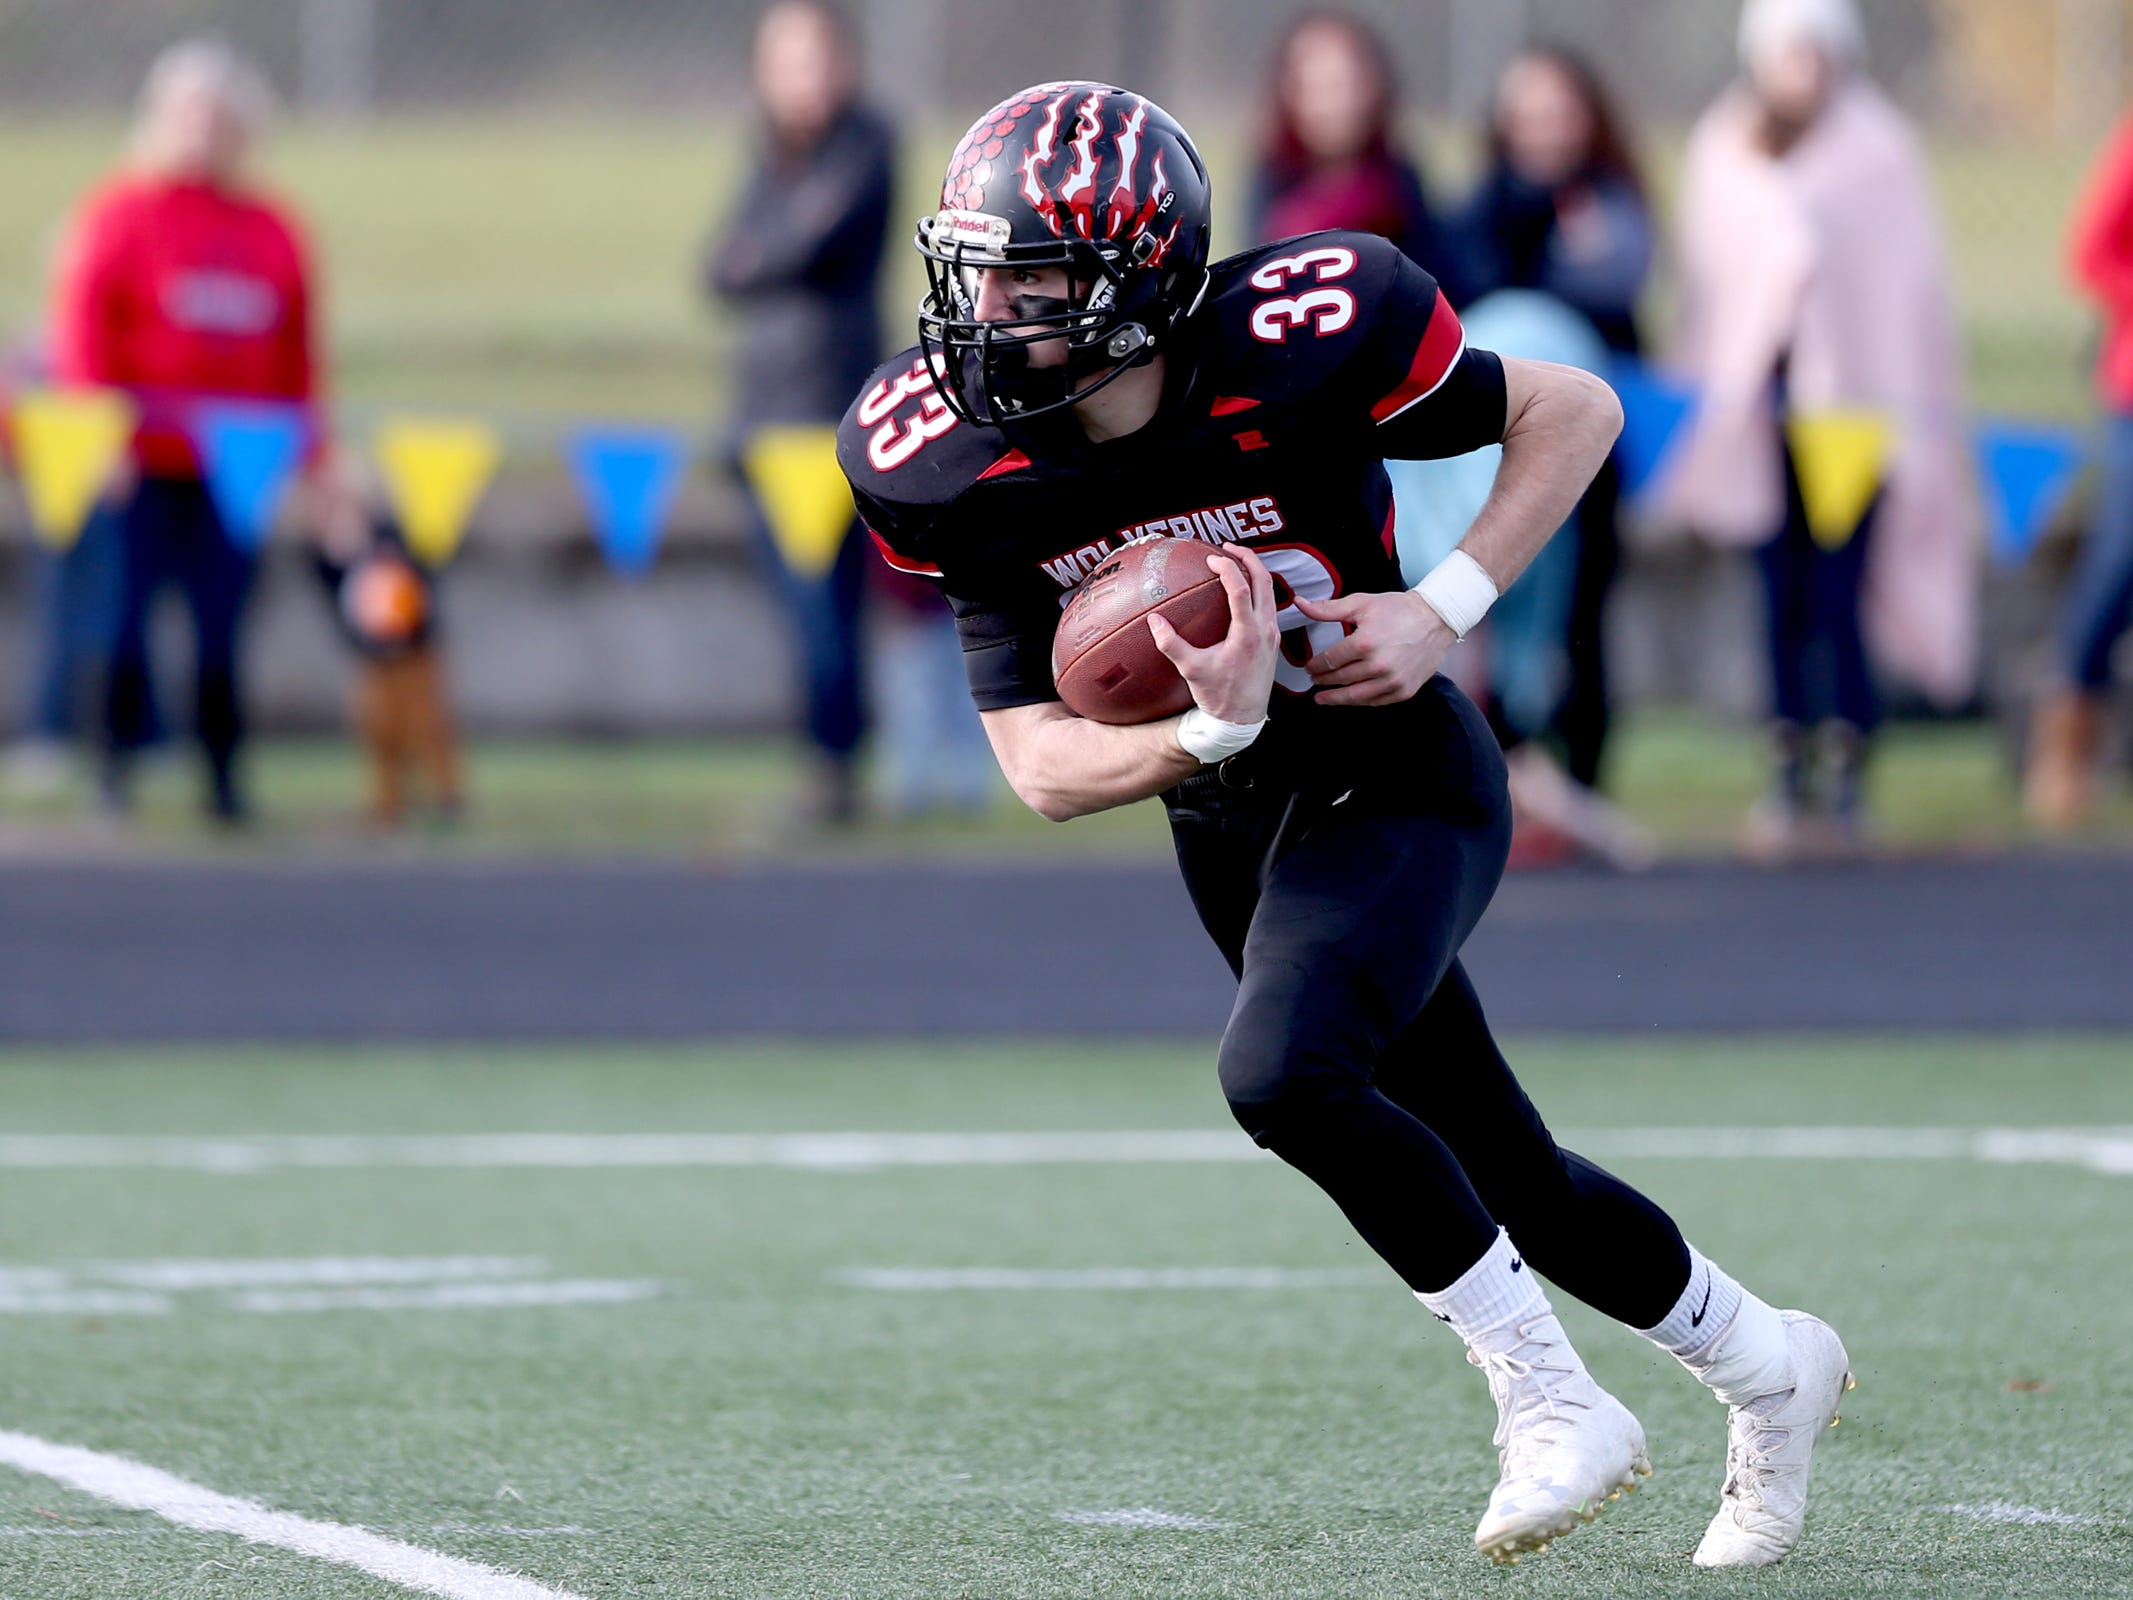 Santiam's Brody Davidson (33) rushes in the Kennedy vs. Santiam OSAA Class 2A state championship football game at Cottage Grove High School in Cottage Grove on Saturday, Nov. 24, 2018.